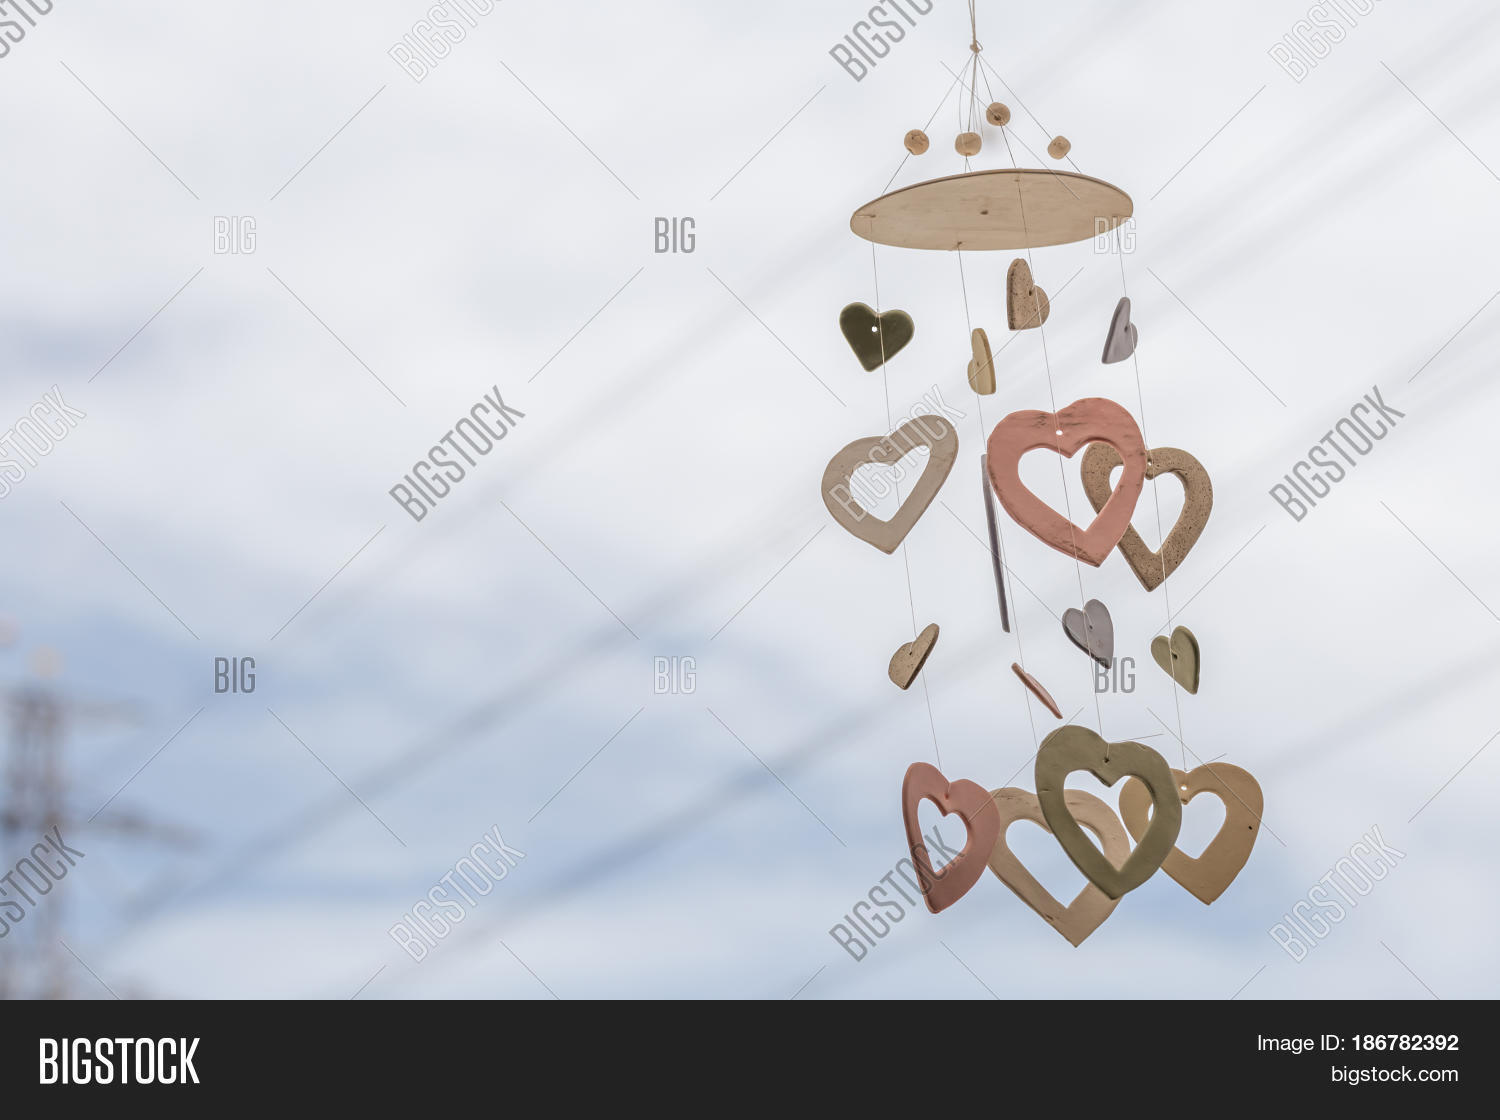 Heart Shaped Ceramic Image Photo Free Trial Bigstock